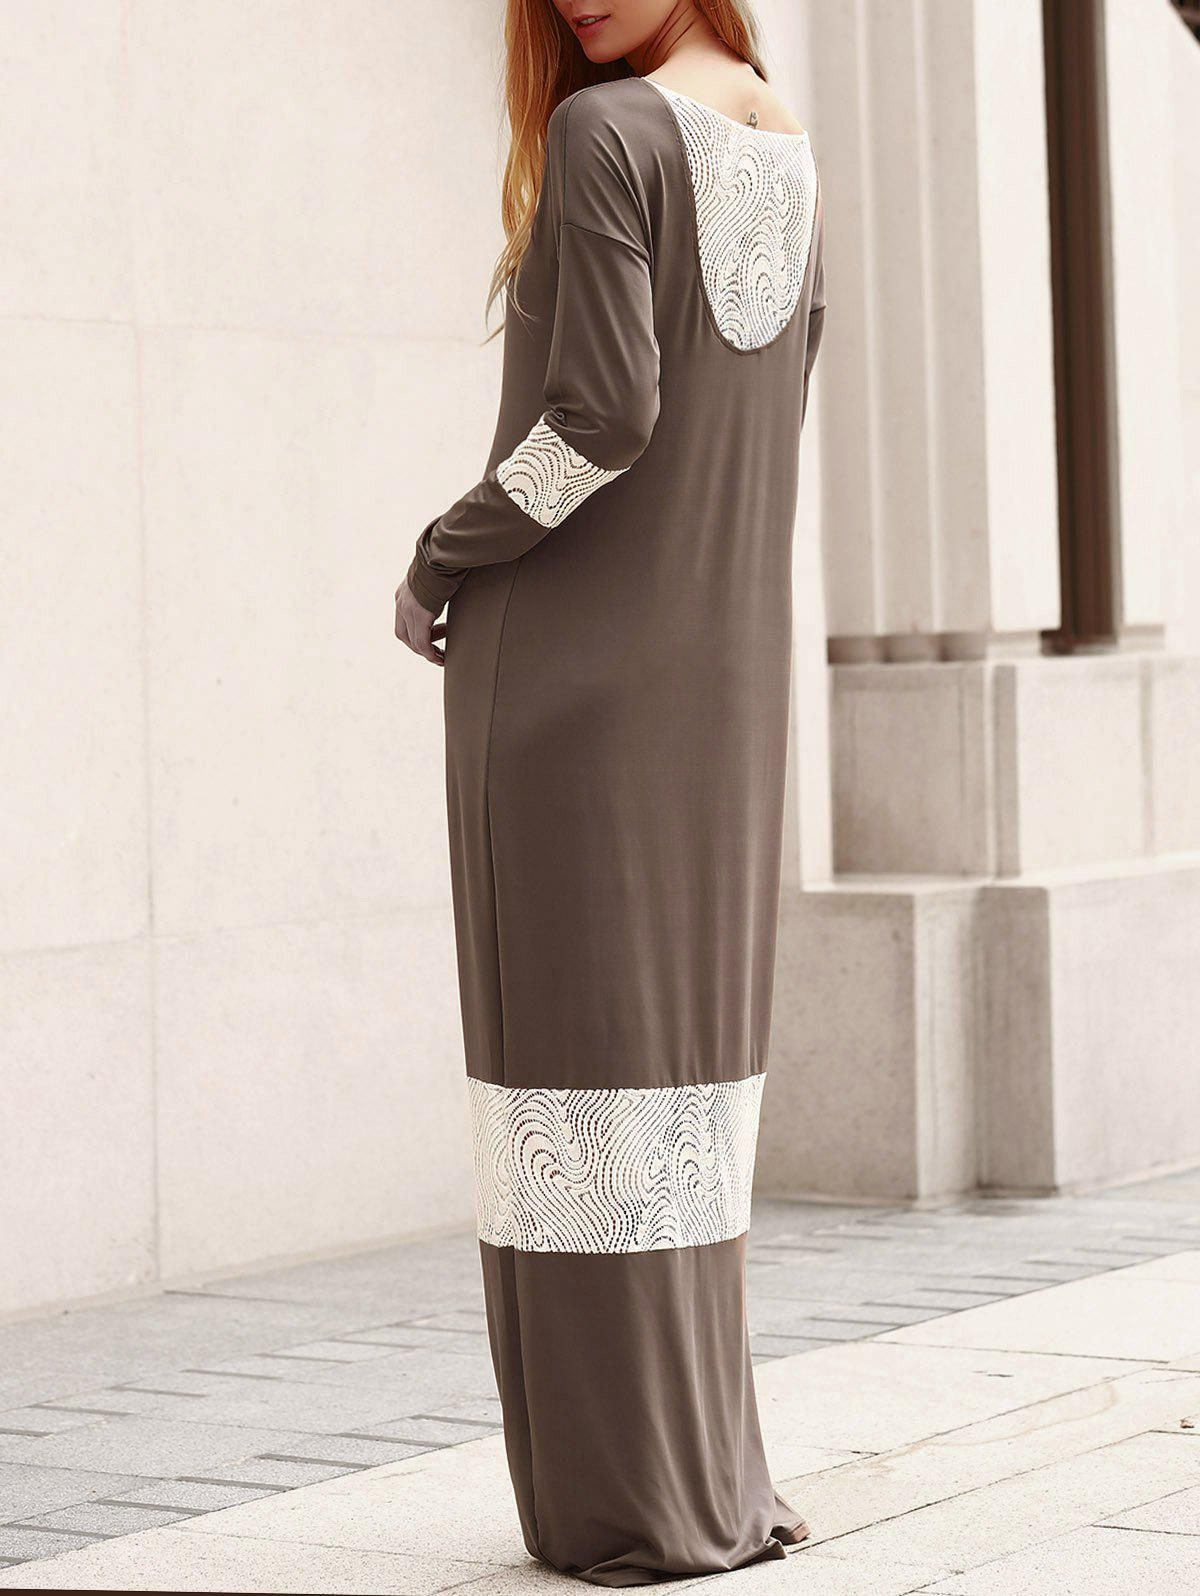 Stylish Scoop Collar Long Sleeve Lace Splicing Loose-Fitting Women's Dress - GREY/WHITE M